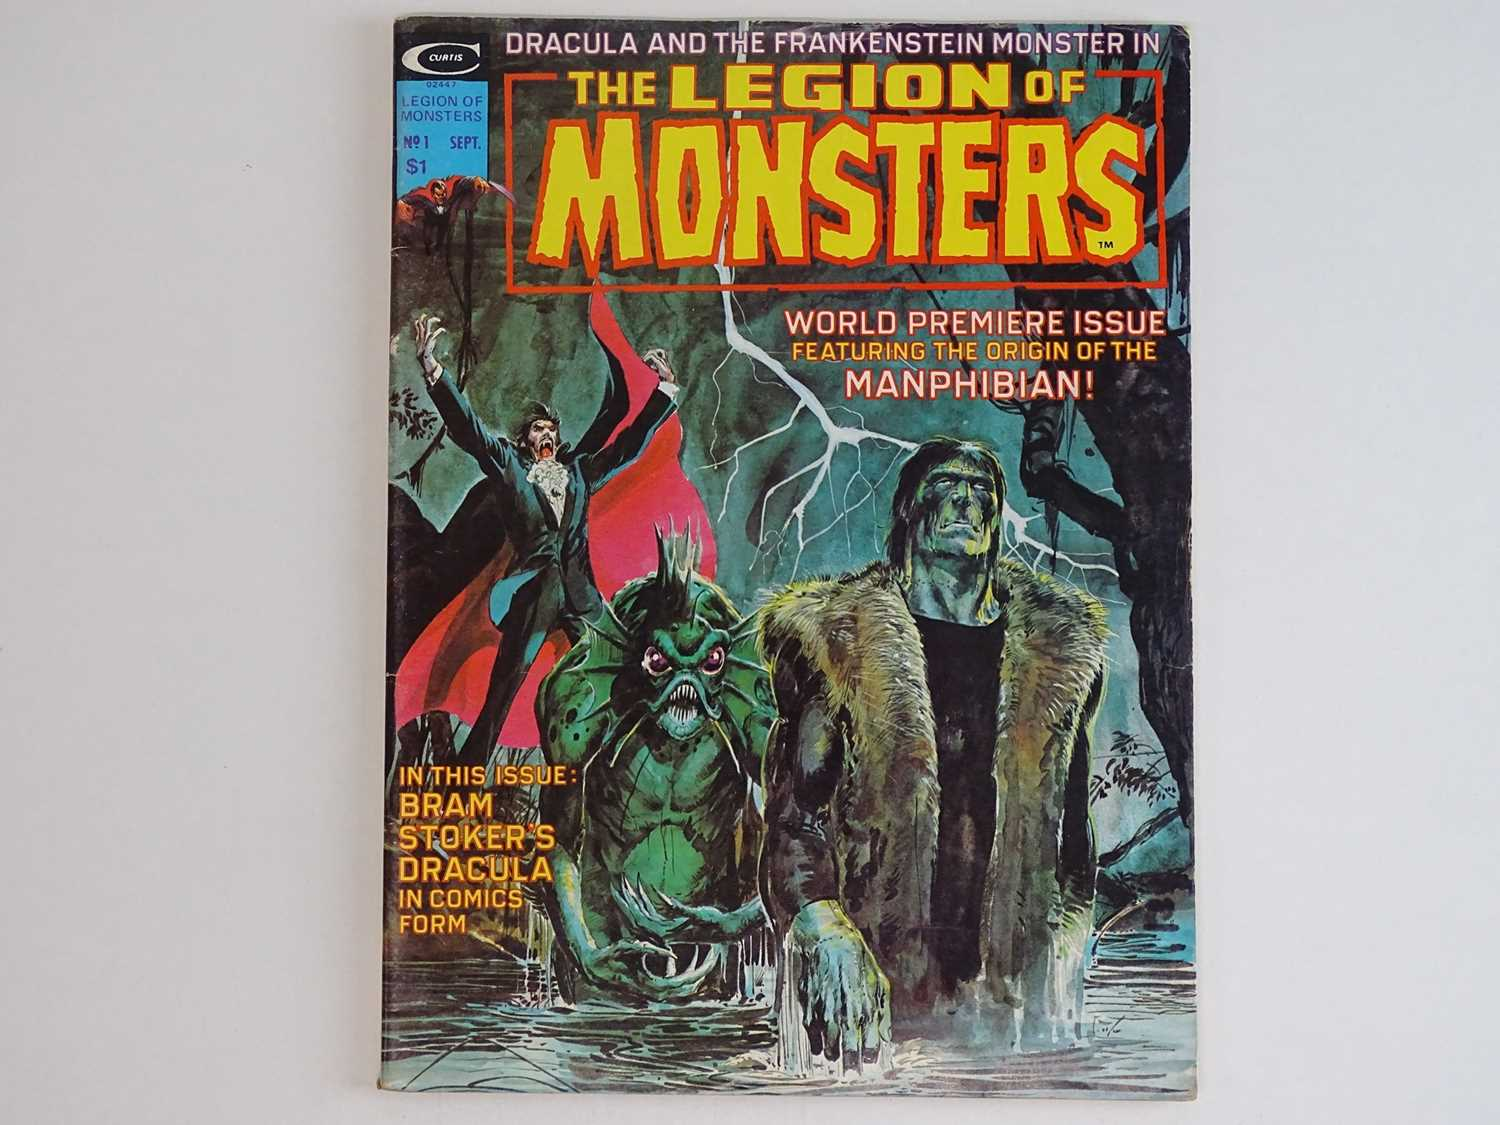 LEGION OF MONSTERS #1 - (1975 - MARVEL) Scarce Magazine Format - Origin and First appearance of